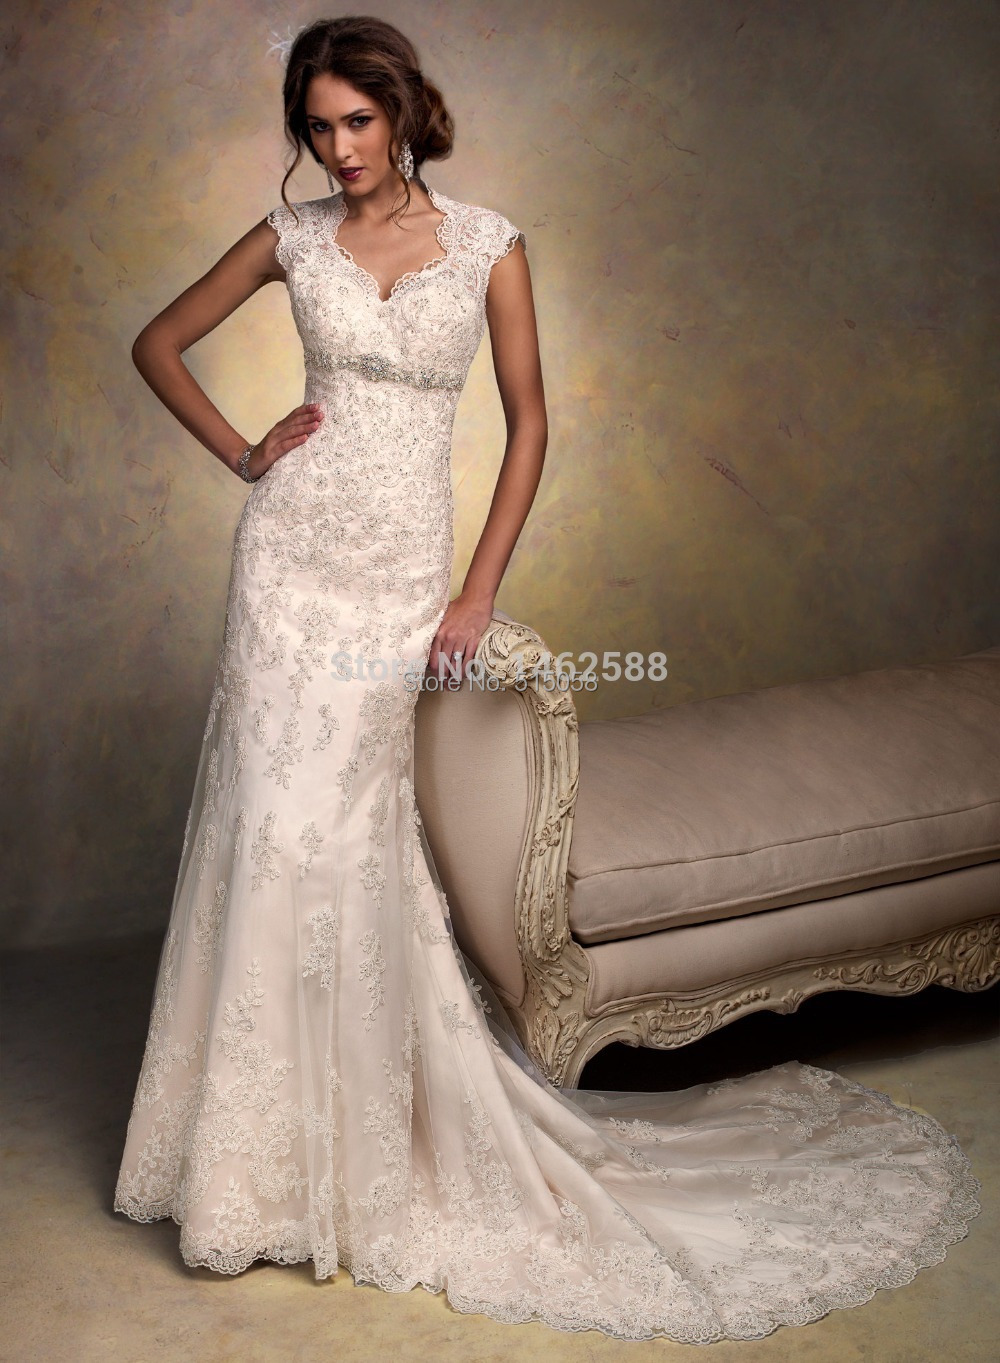 Cap sleeves open back lace wedding dress mermaid 2015 for Vintage lace wedding dress open back